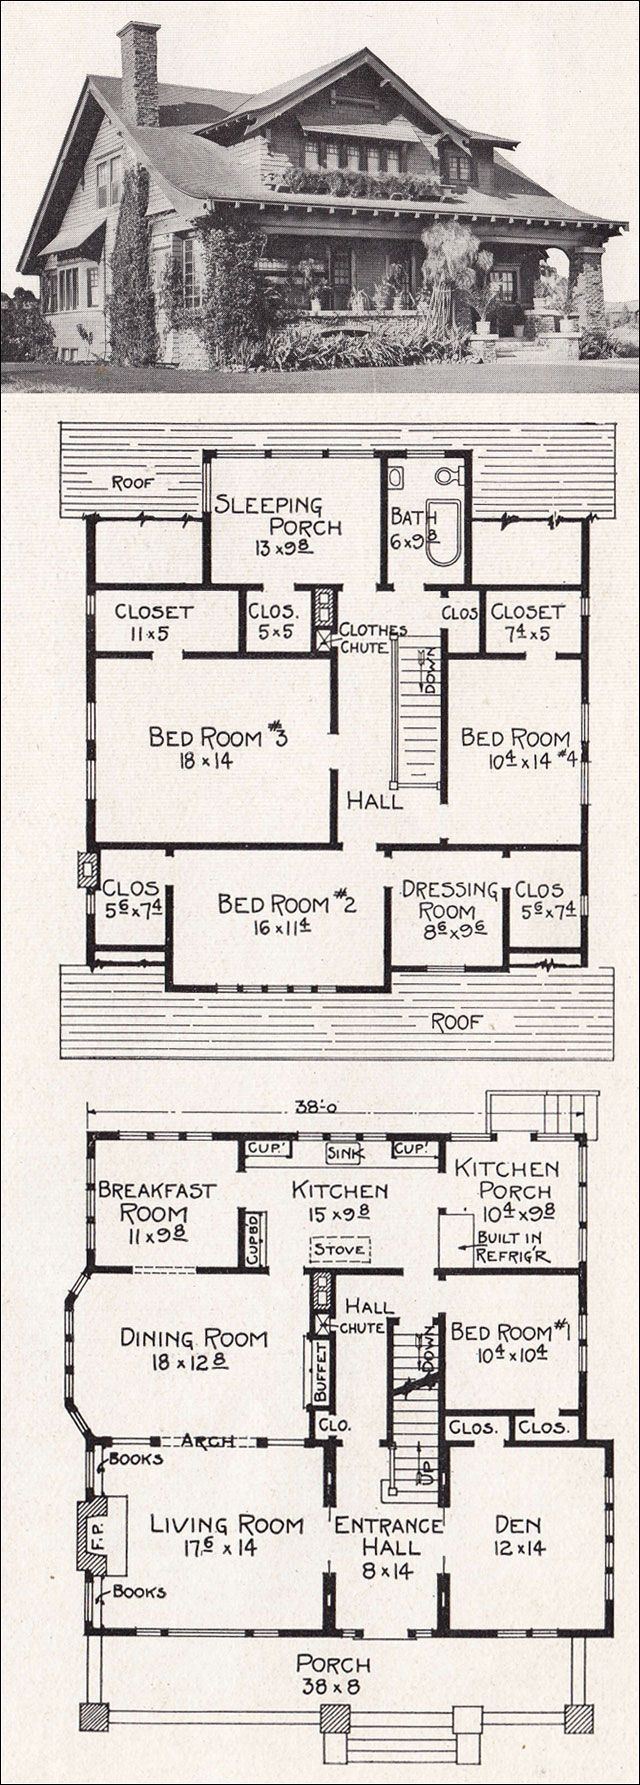 Vintage bungalow house plan architectural illustrations for 1 story bungalow house plans